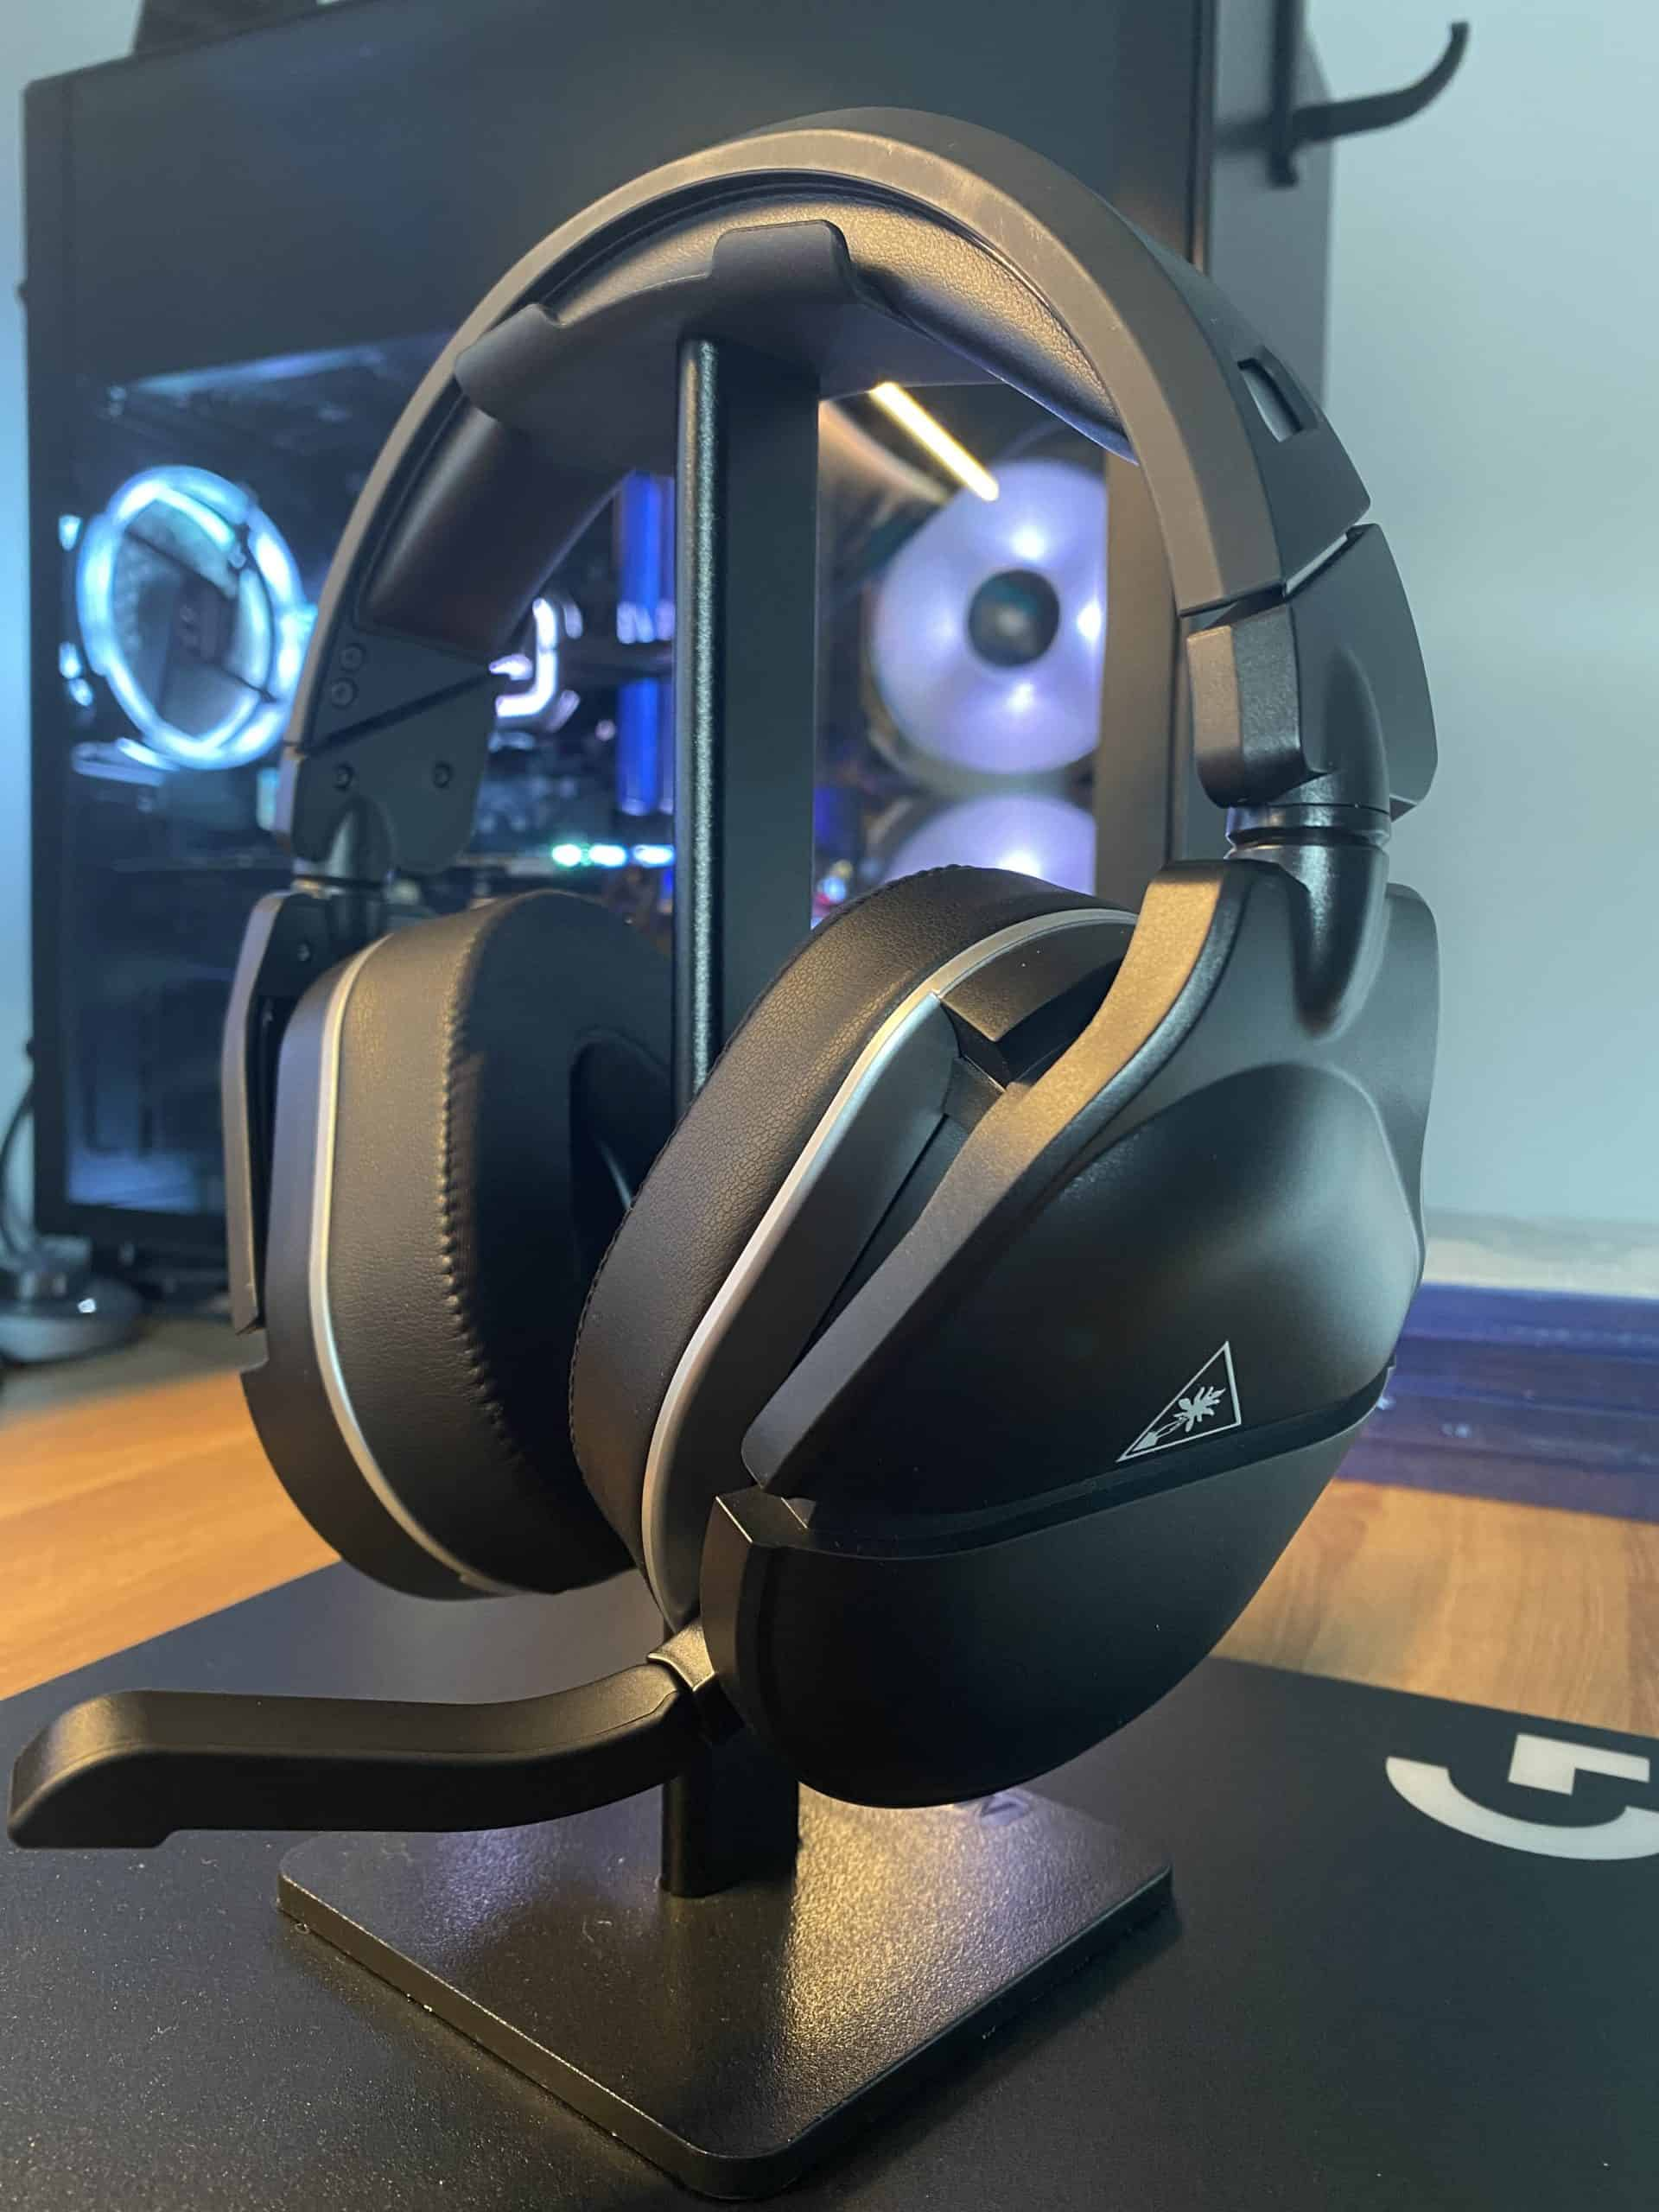 Le micro rétractable du Turtle Beach Stealth 700 Gen 2